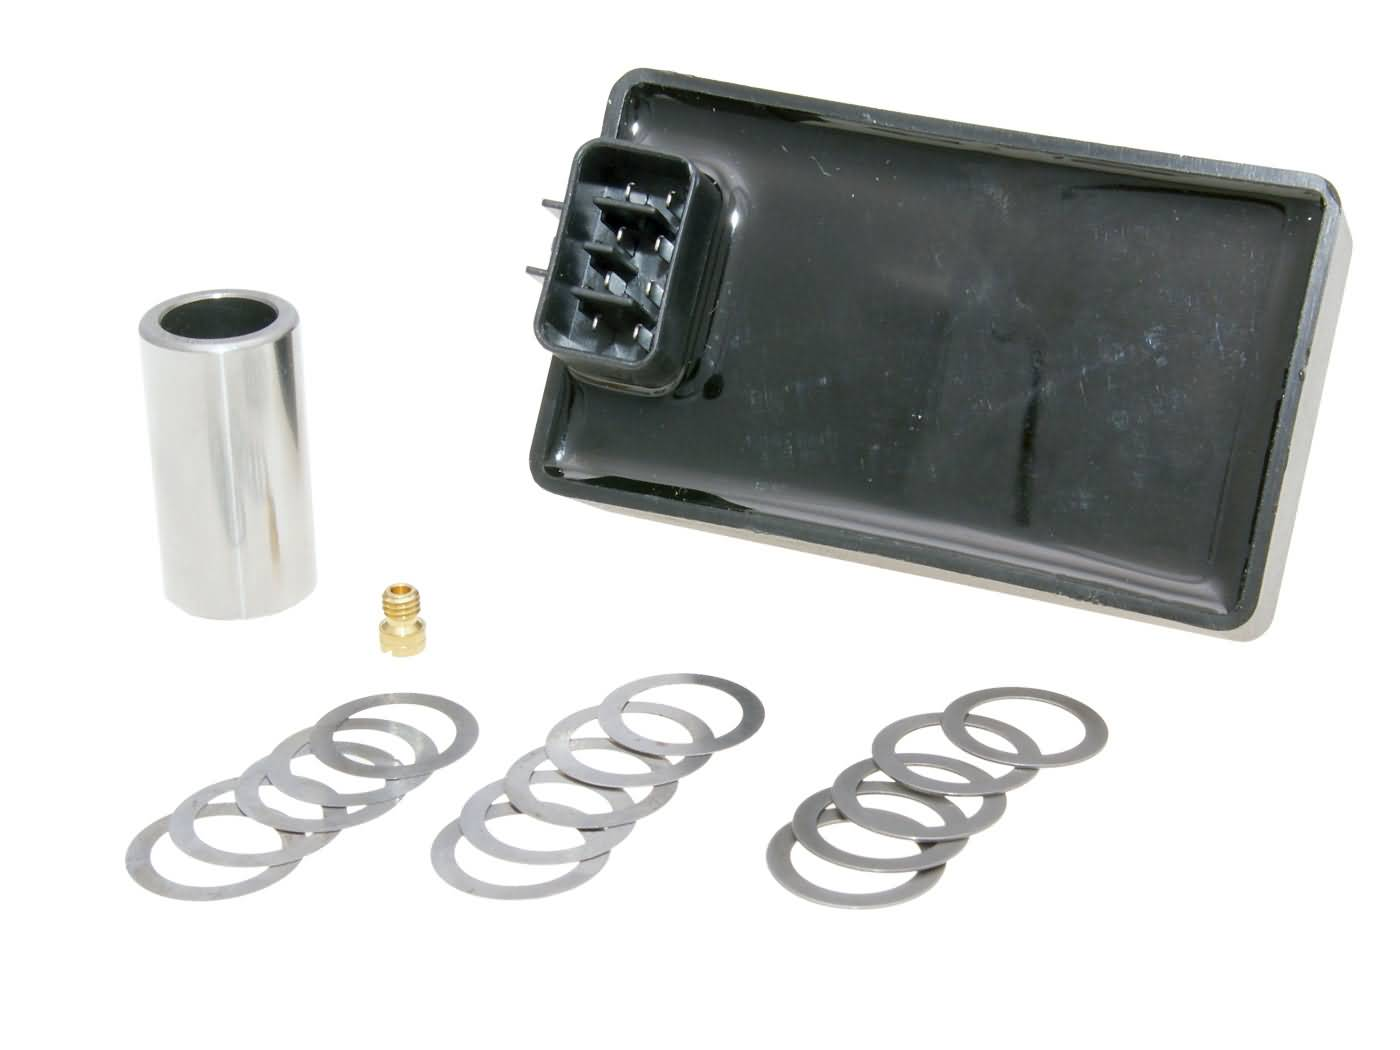 CDI power kit unrestricted for Kymco Super 8 50 4-stroke / Big Tire